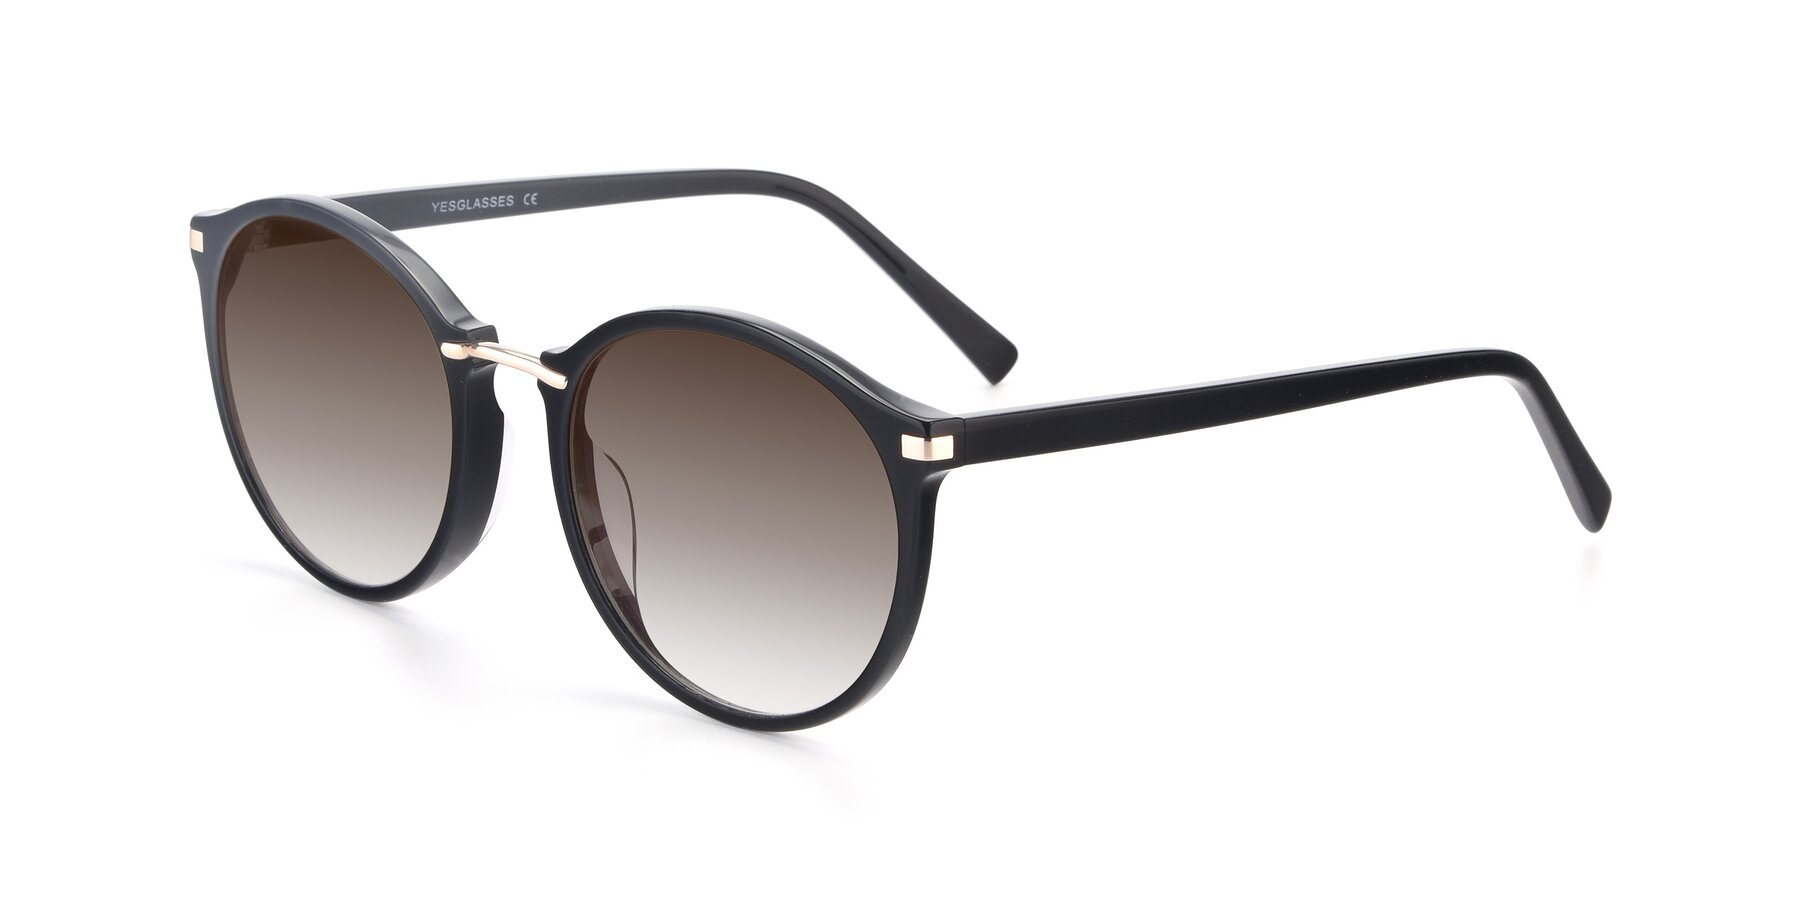 Angle of 17582 in Black with Brown Gradient Lenses